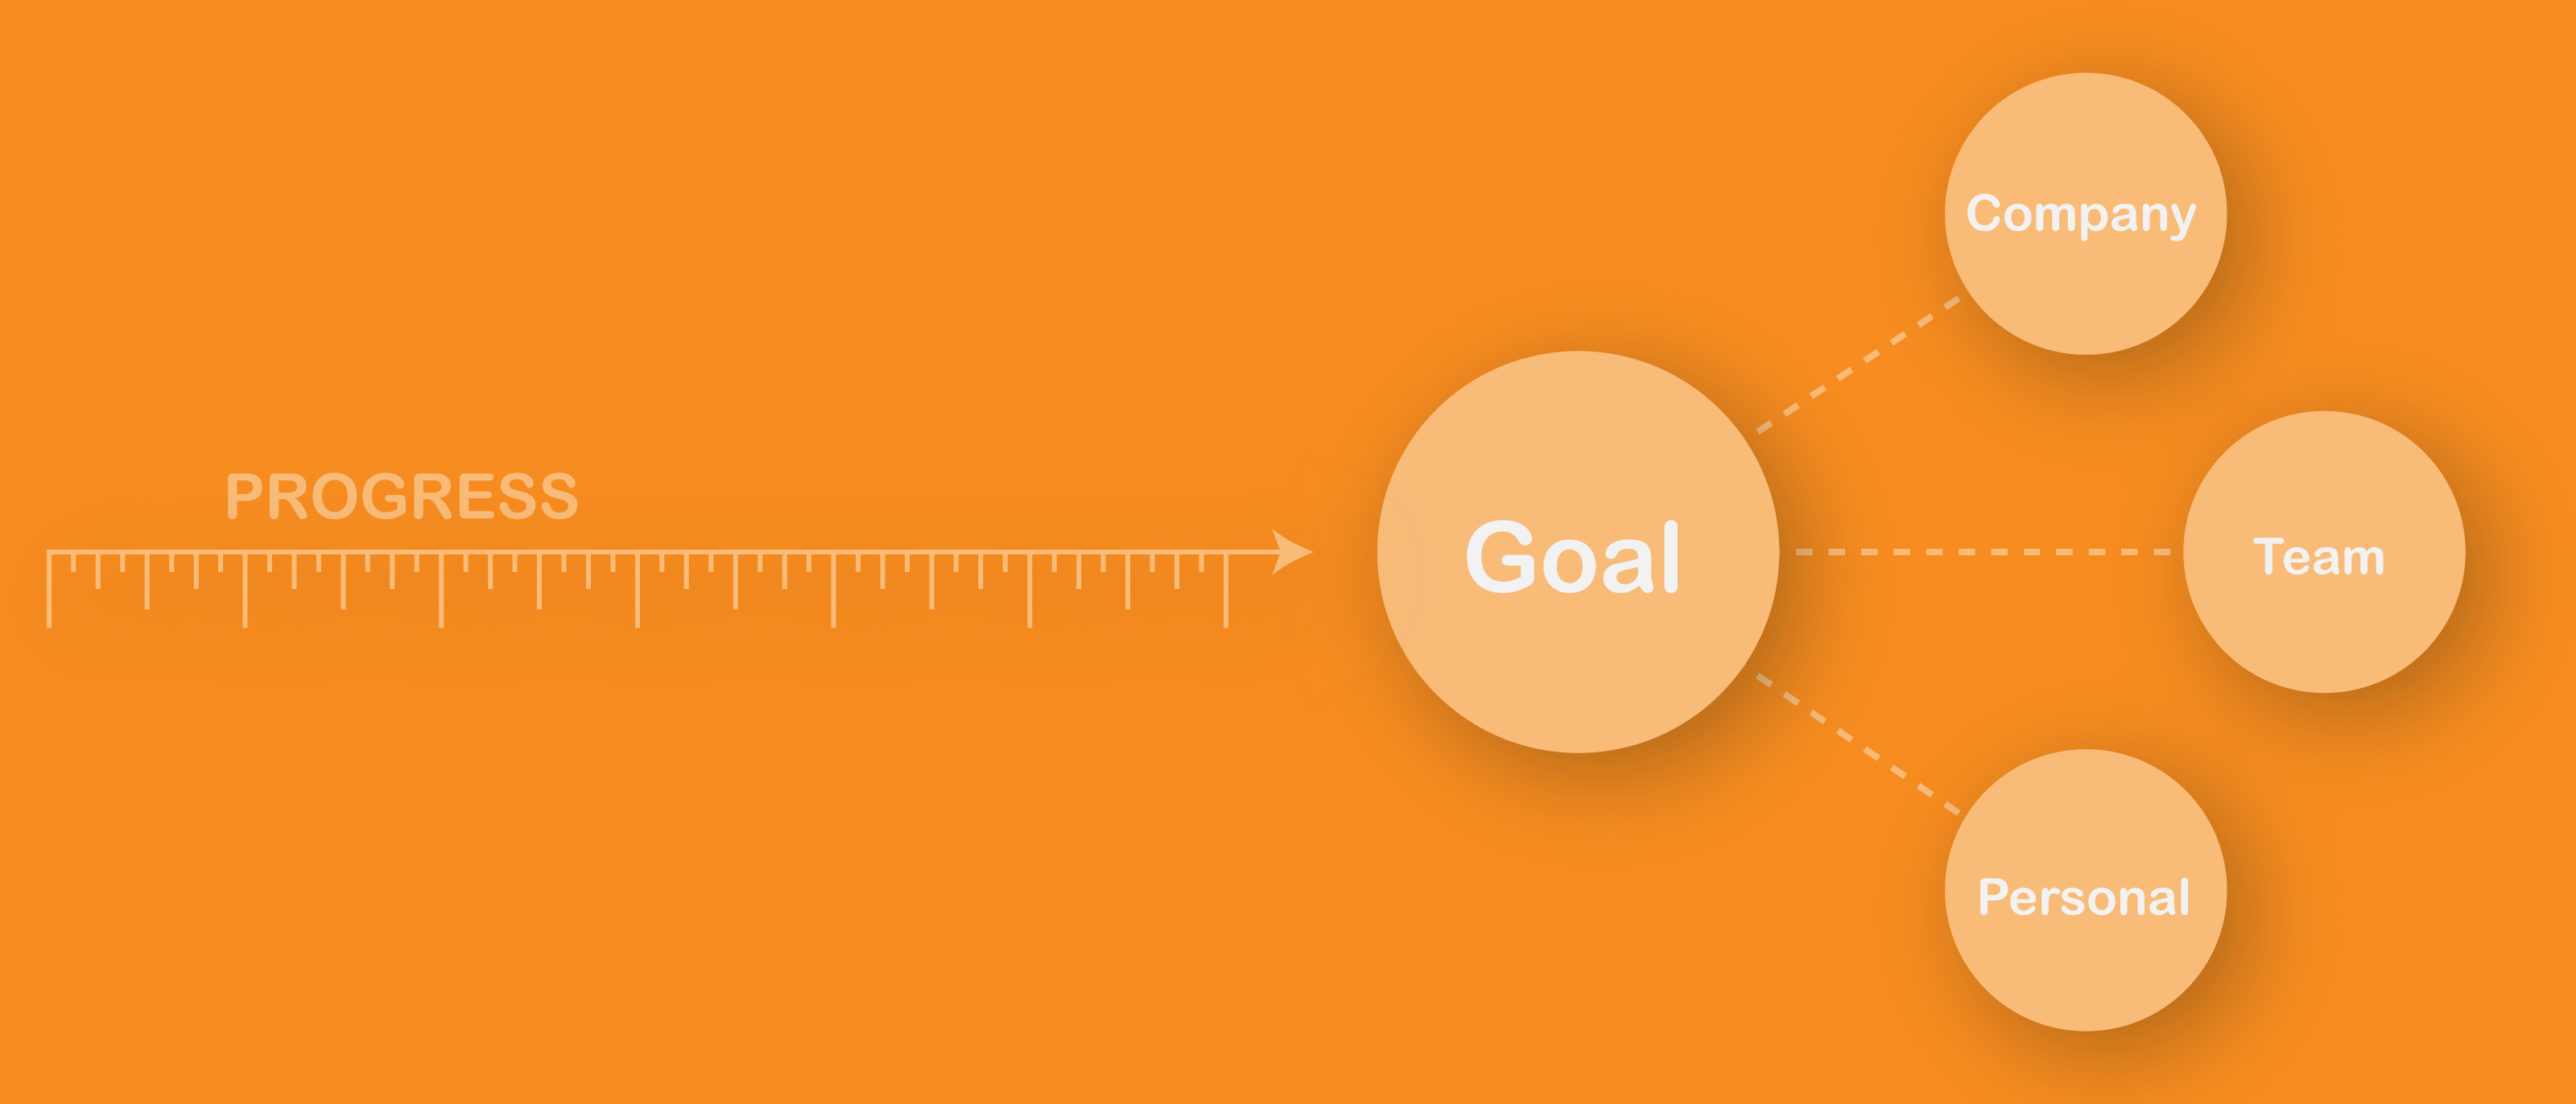 Setting OKRs to reach company goals